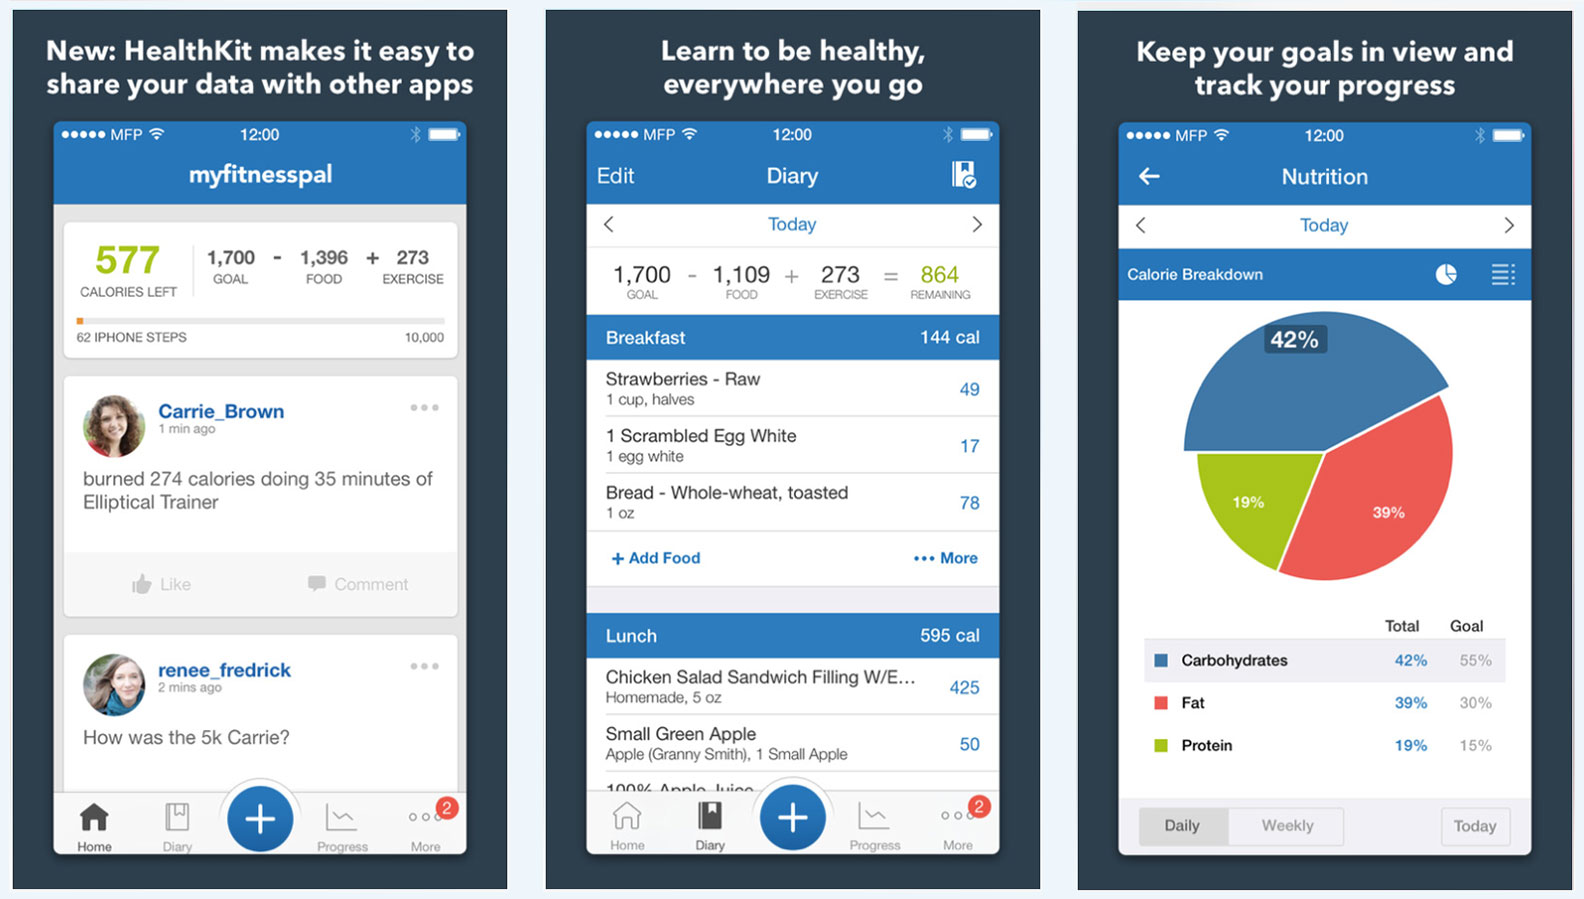 Easy meal and physical activity tracking right on your phone